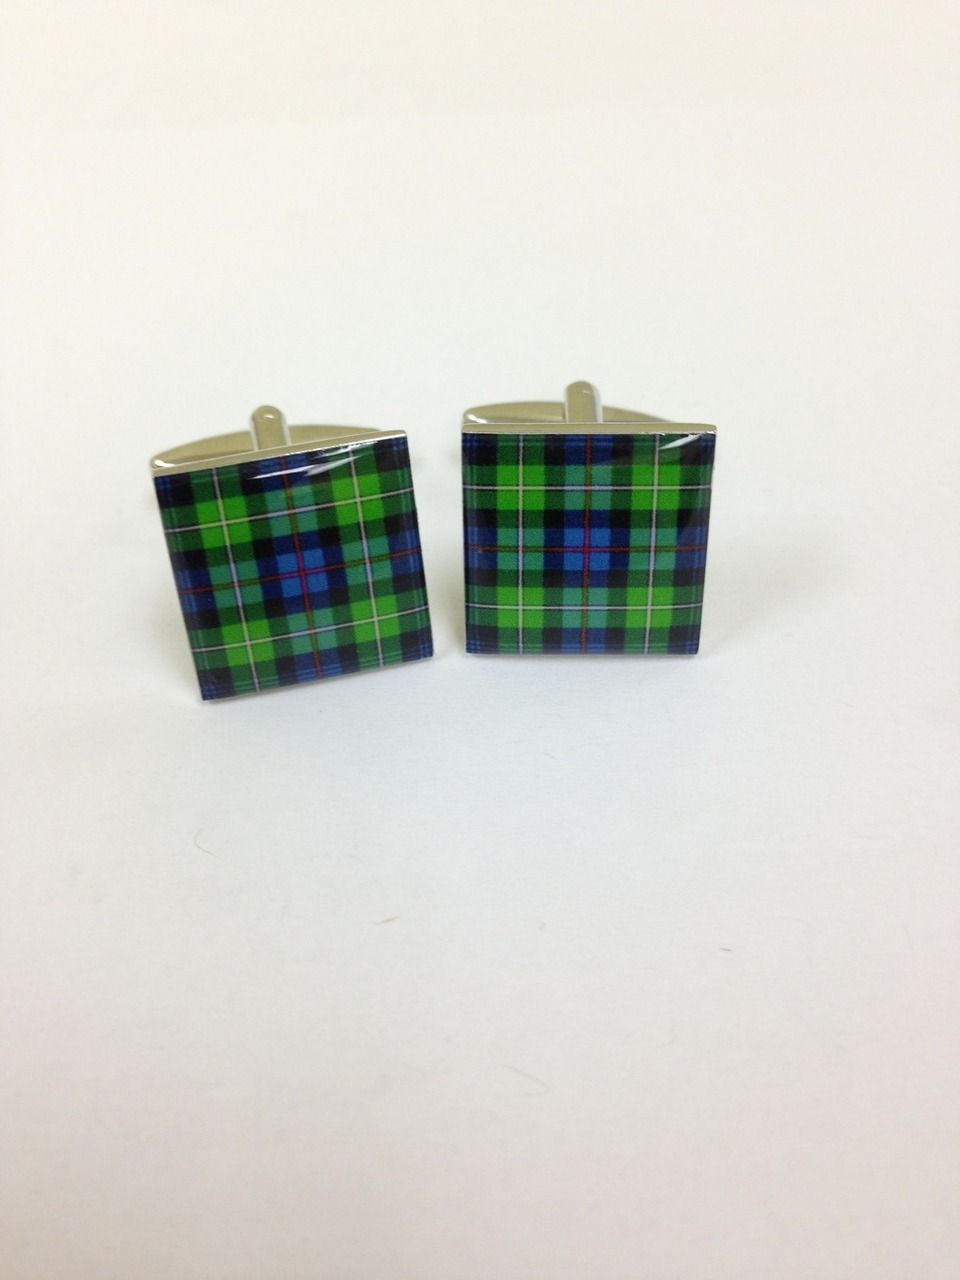 2 Pc. Green/Blue Plaid Fashion Design Cufflinks